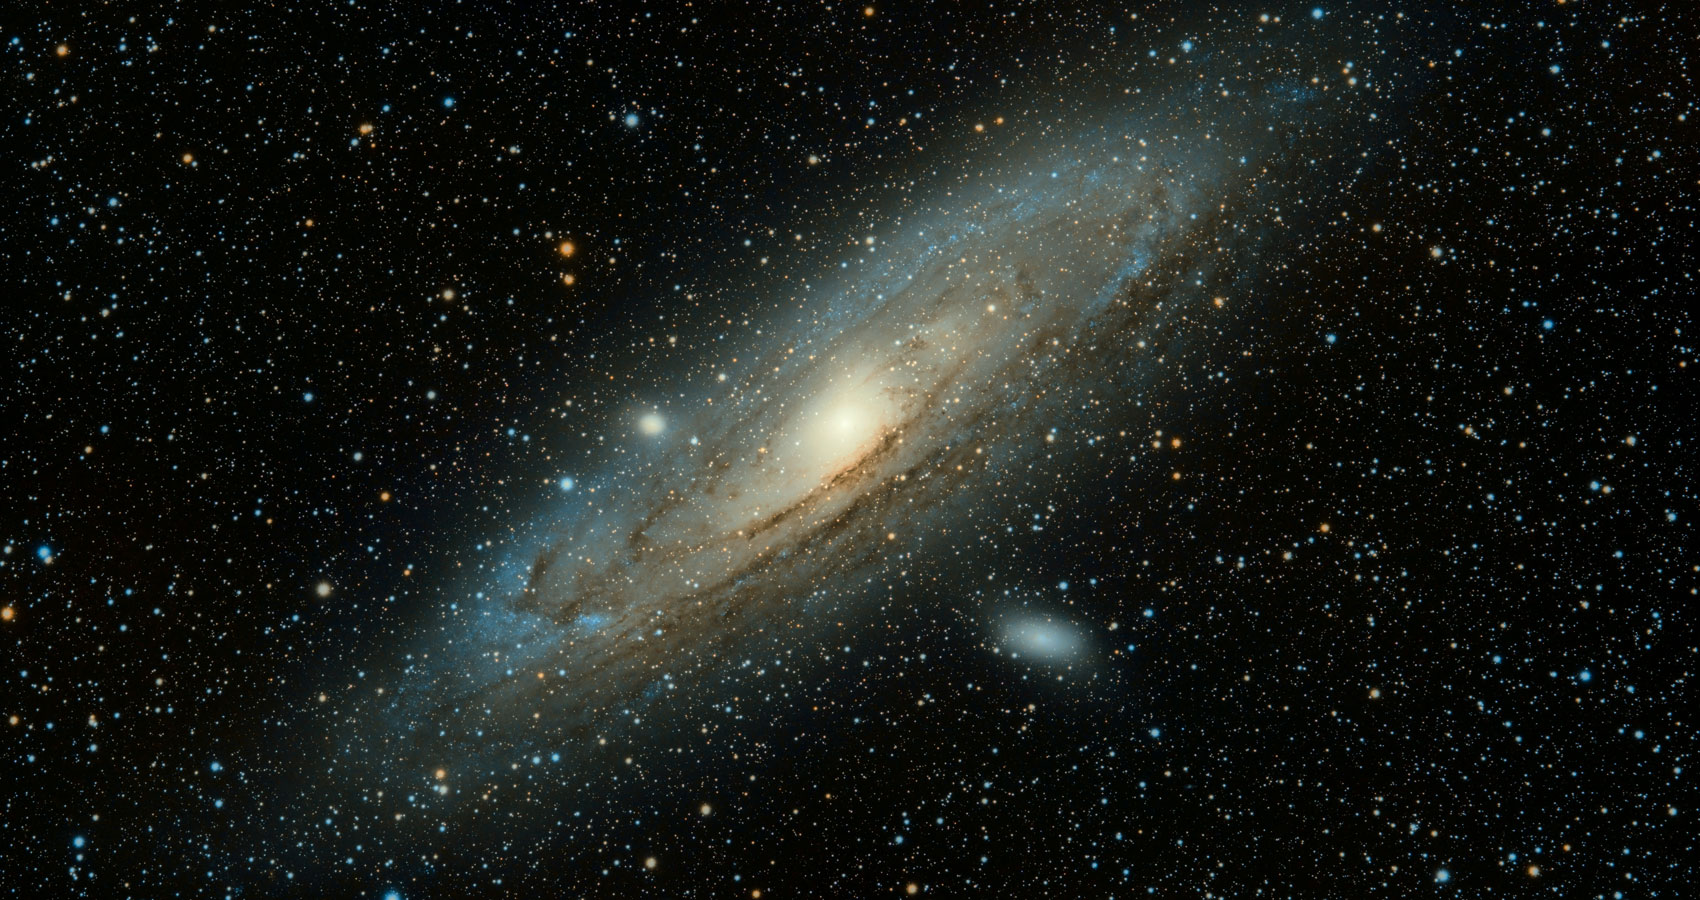 BACK TO ANDROMEDA, a poem by James Marchiori at Spillwords.com